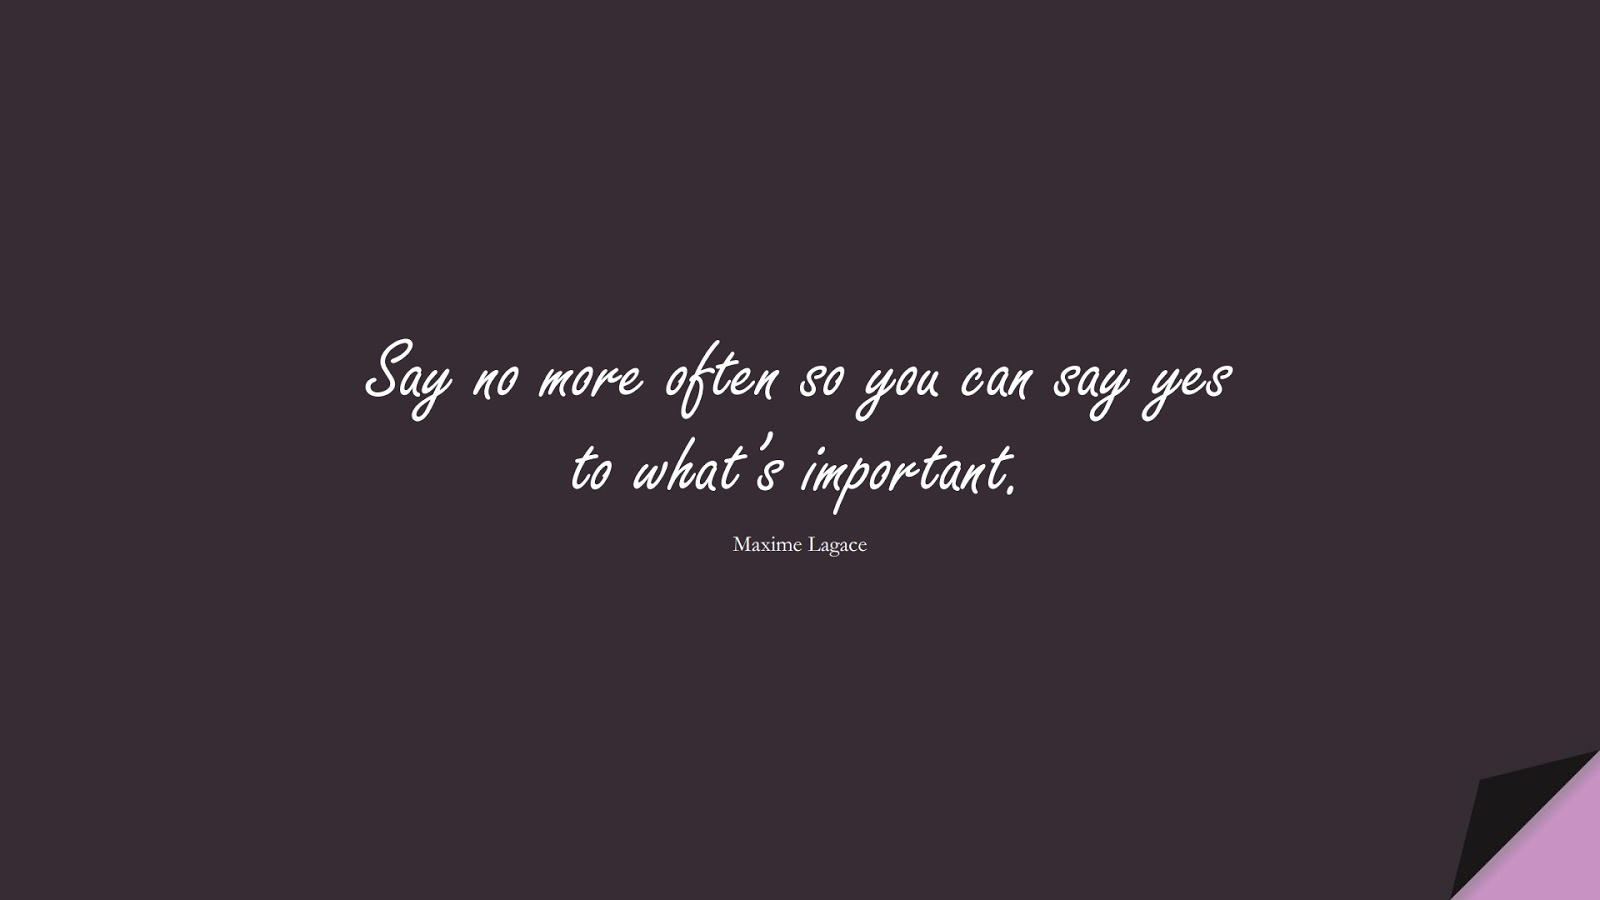 Say no more often so you can say yes to what's important. (Maxime Lagace);  #HappinessQuotes